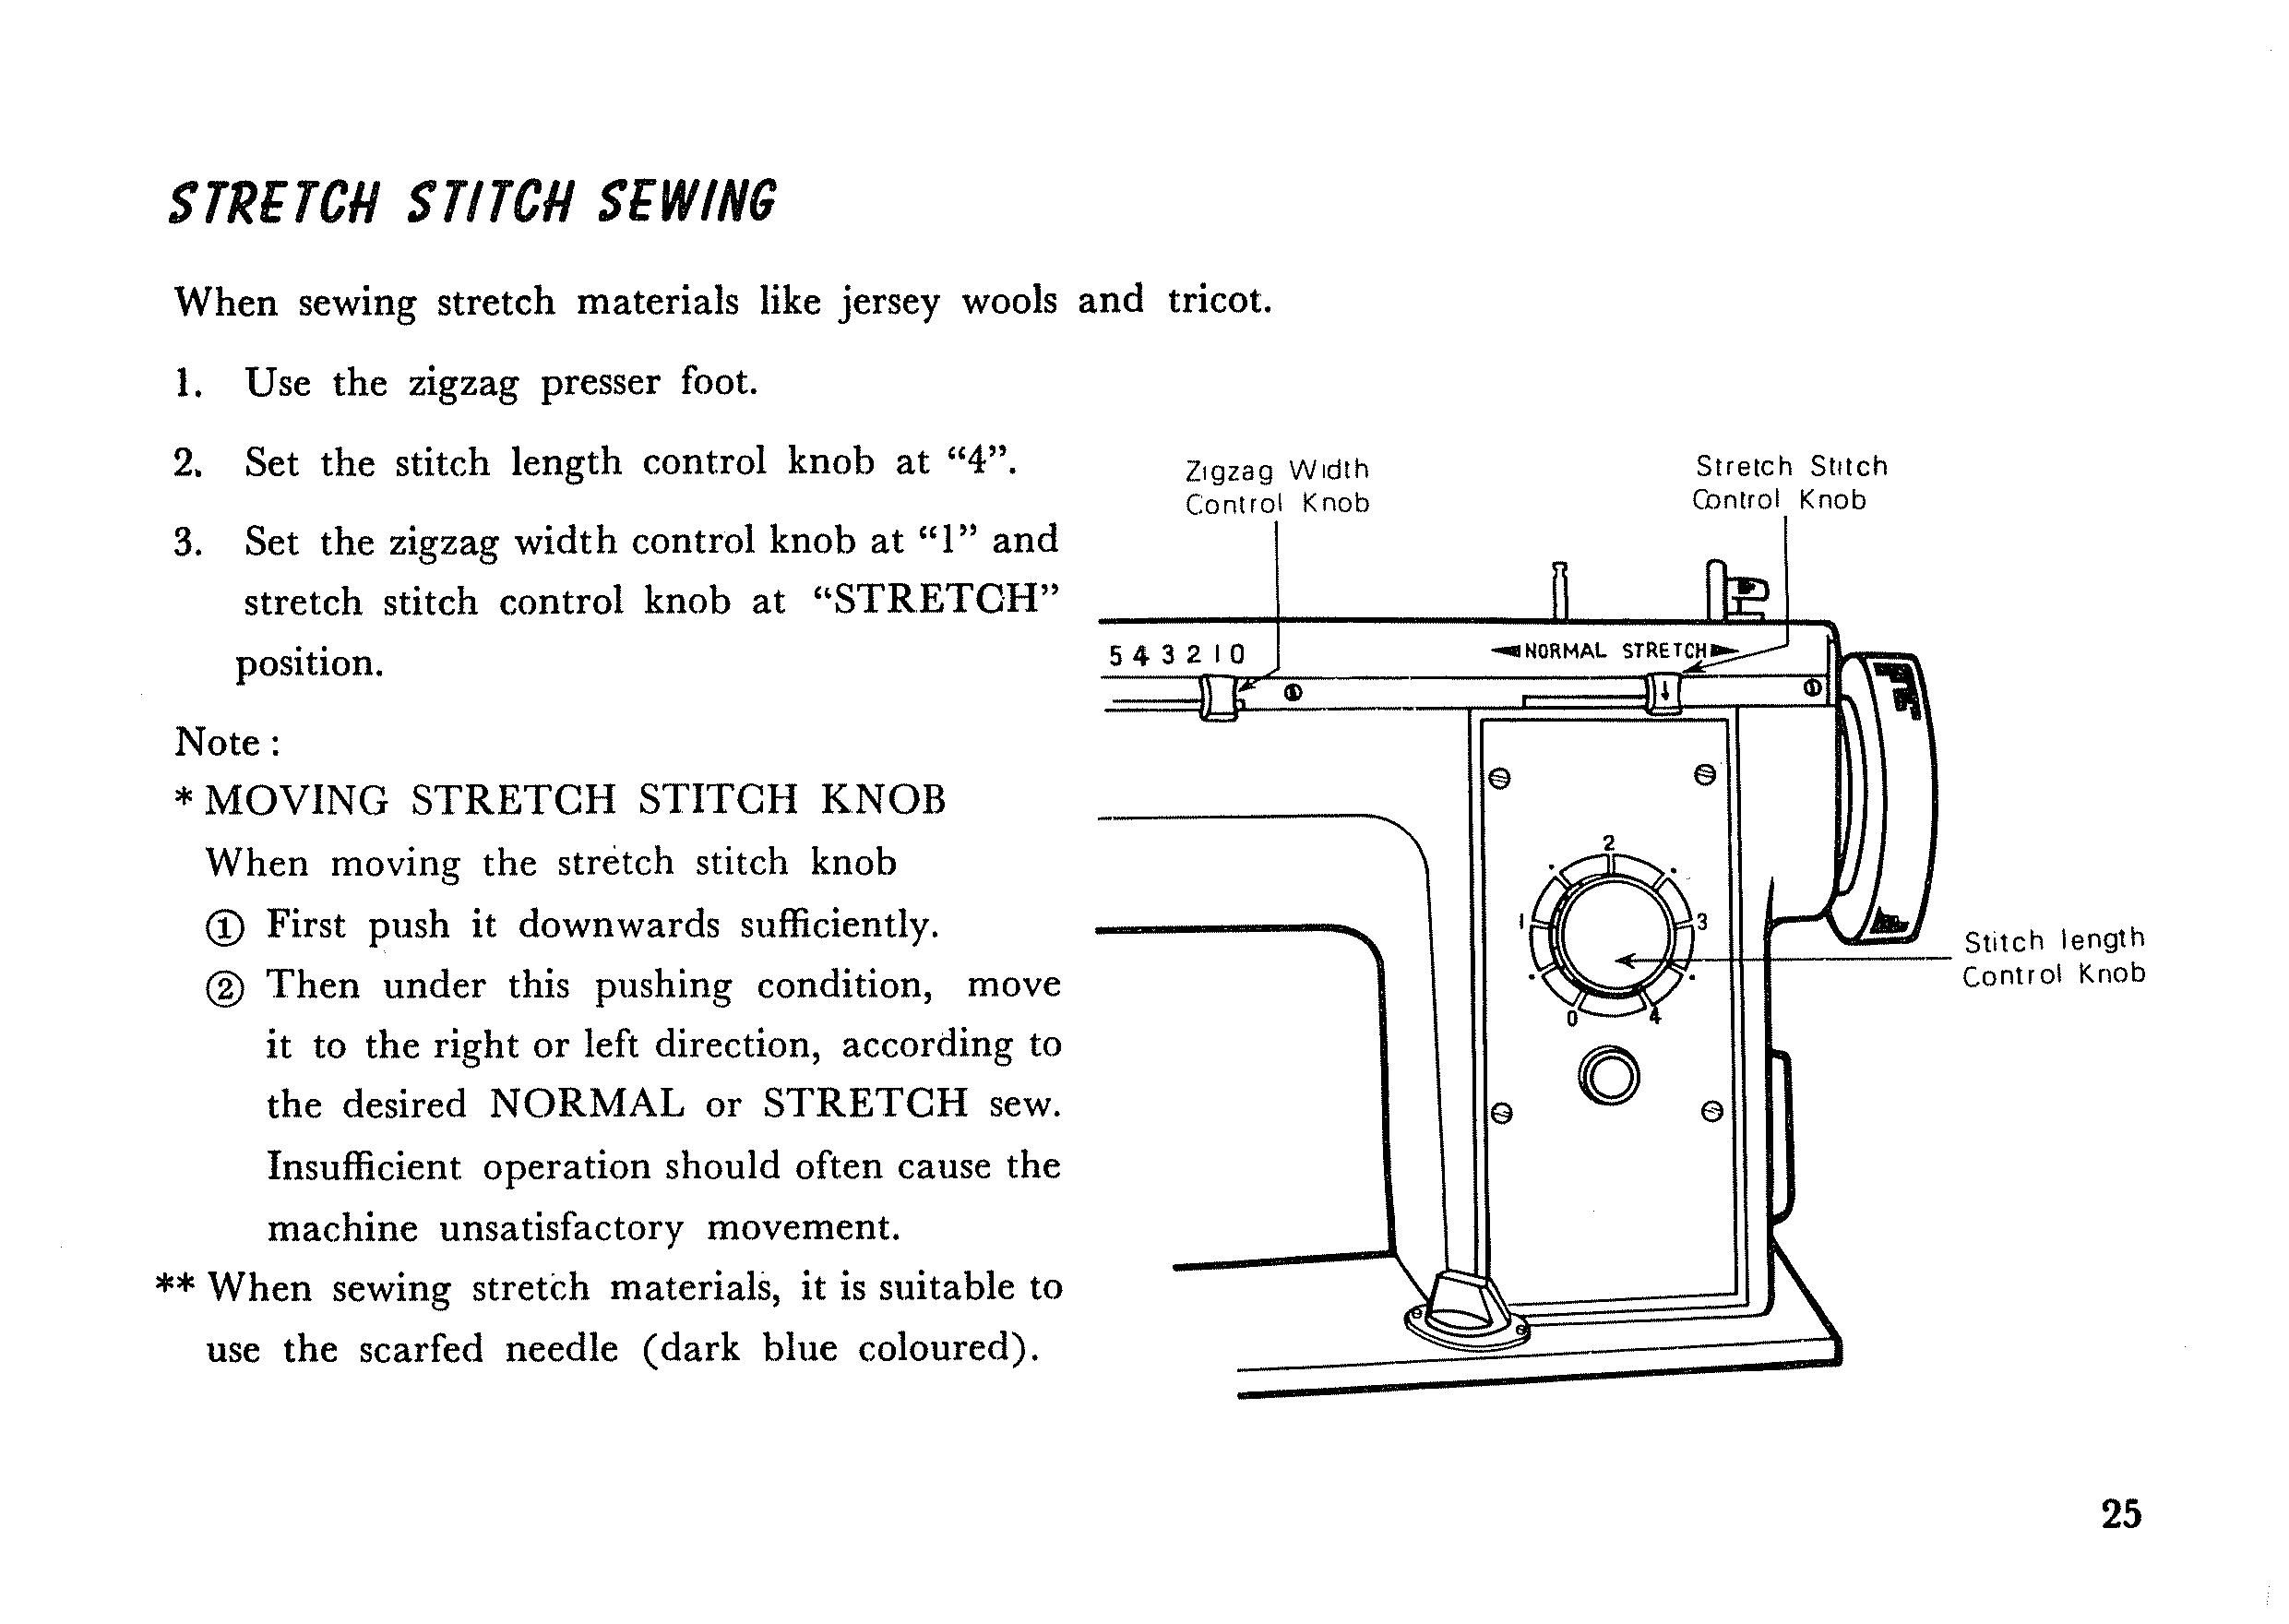 New Home 539 Sewing Machine Owner's Manual